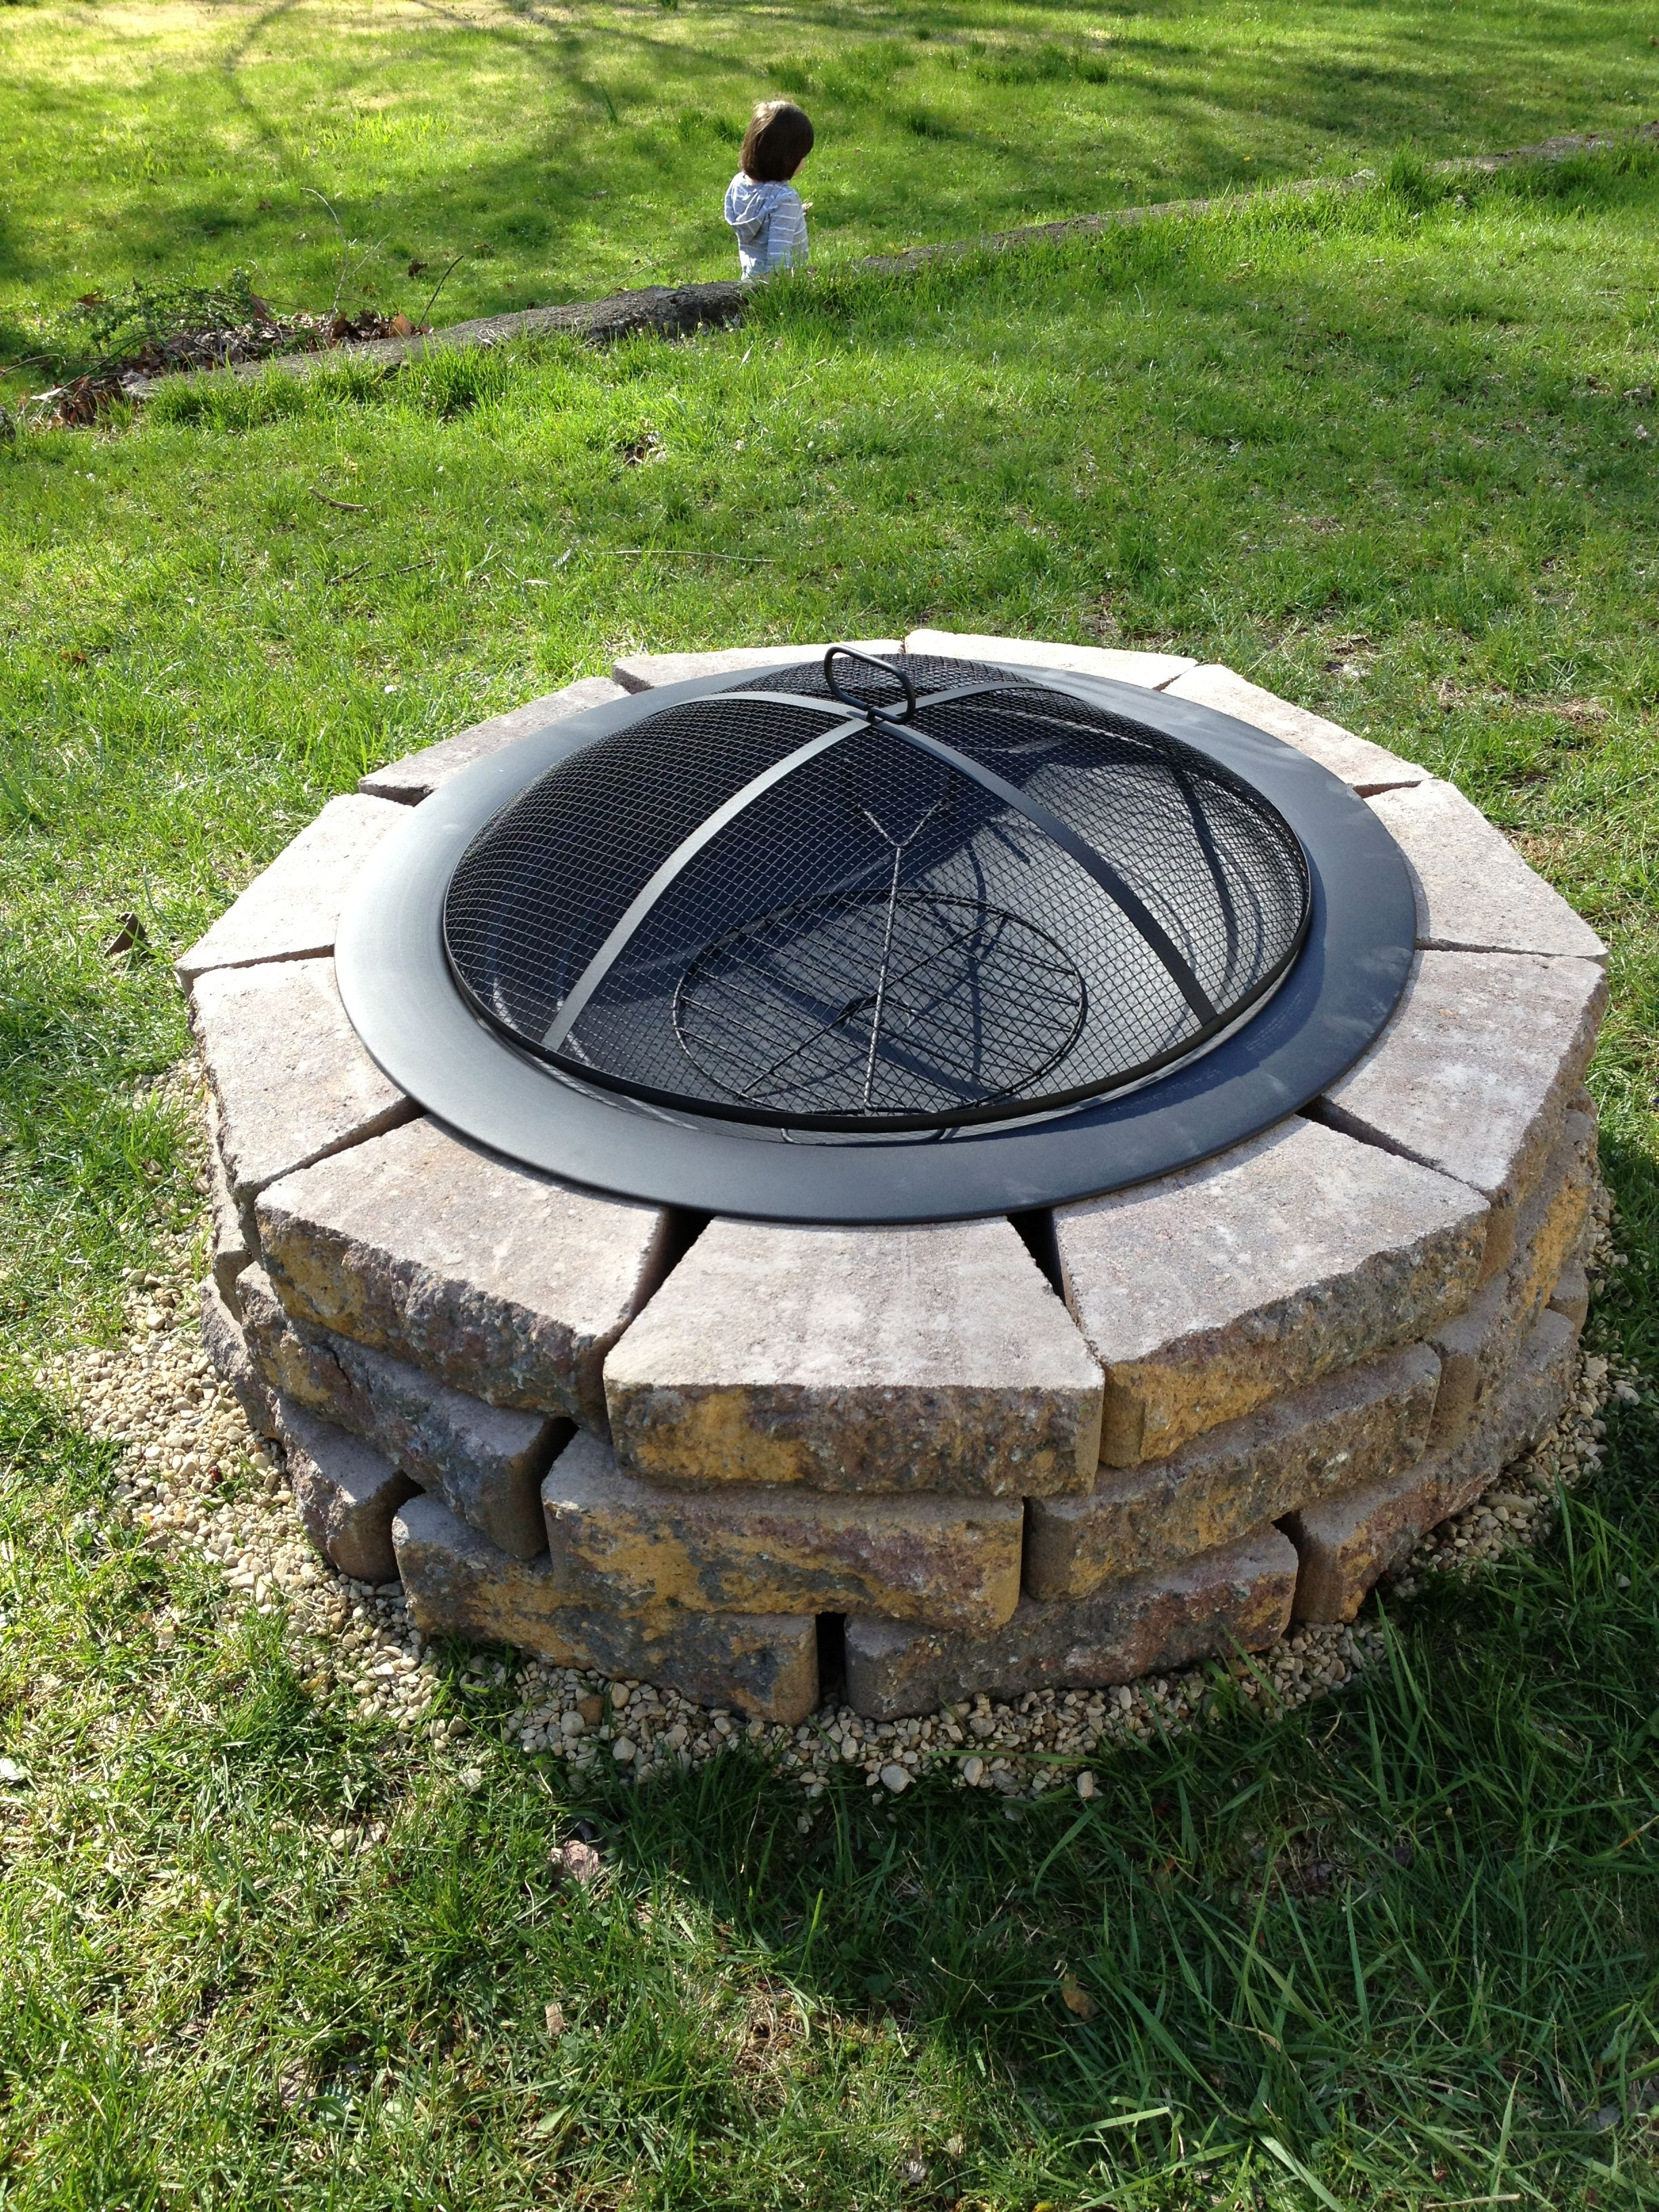 Diy Fire Pit With Spark Screen Diy Pinterest